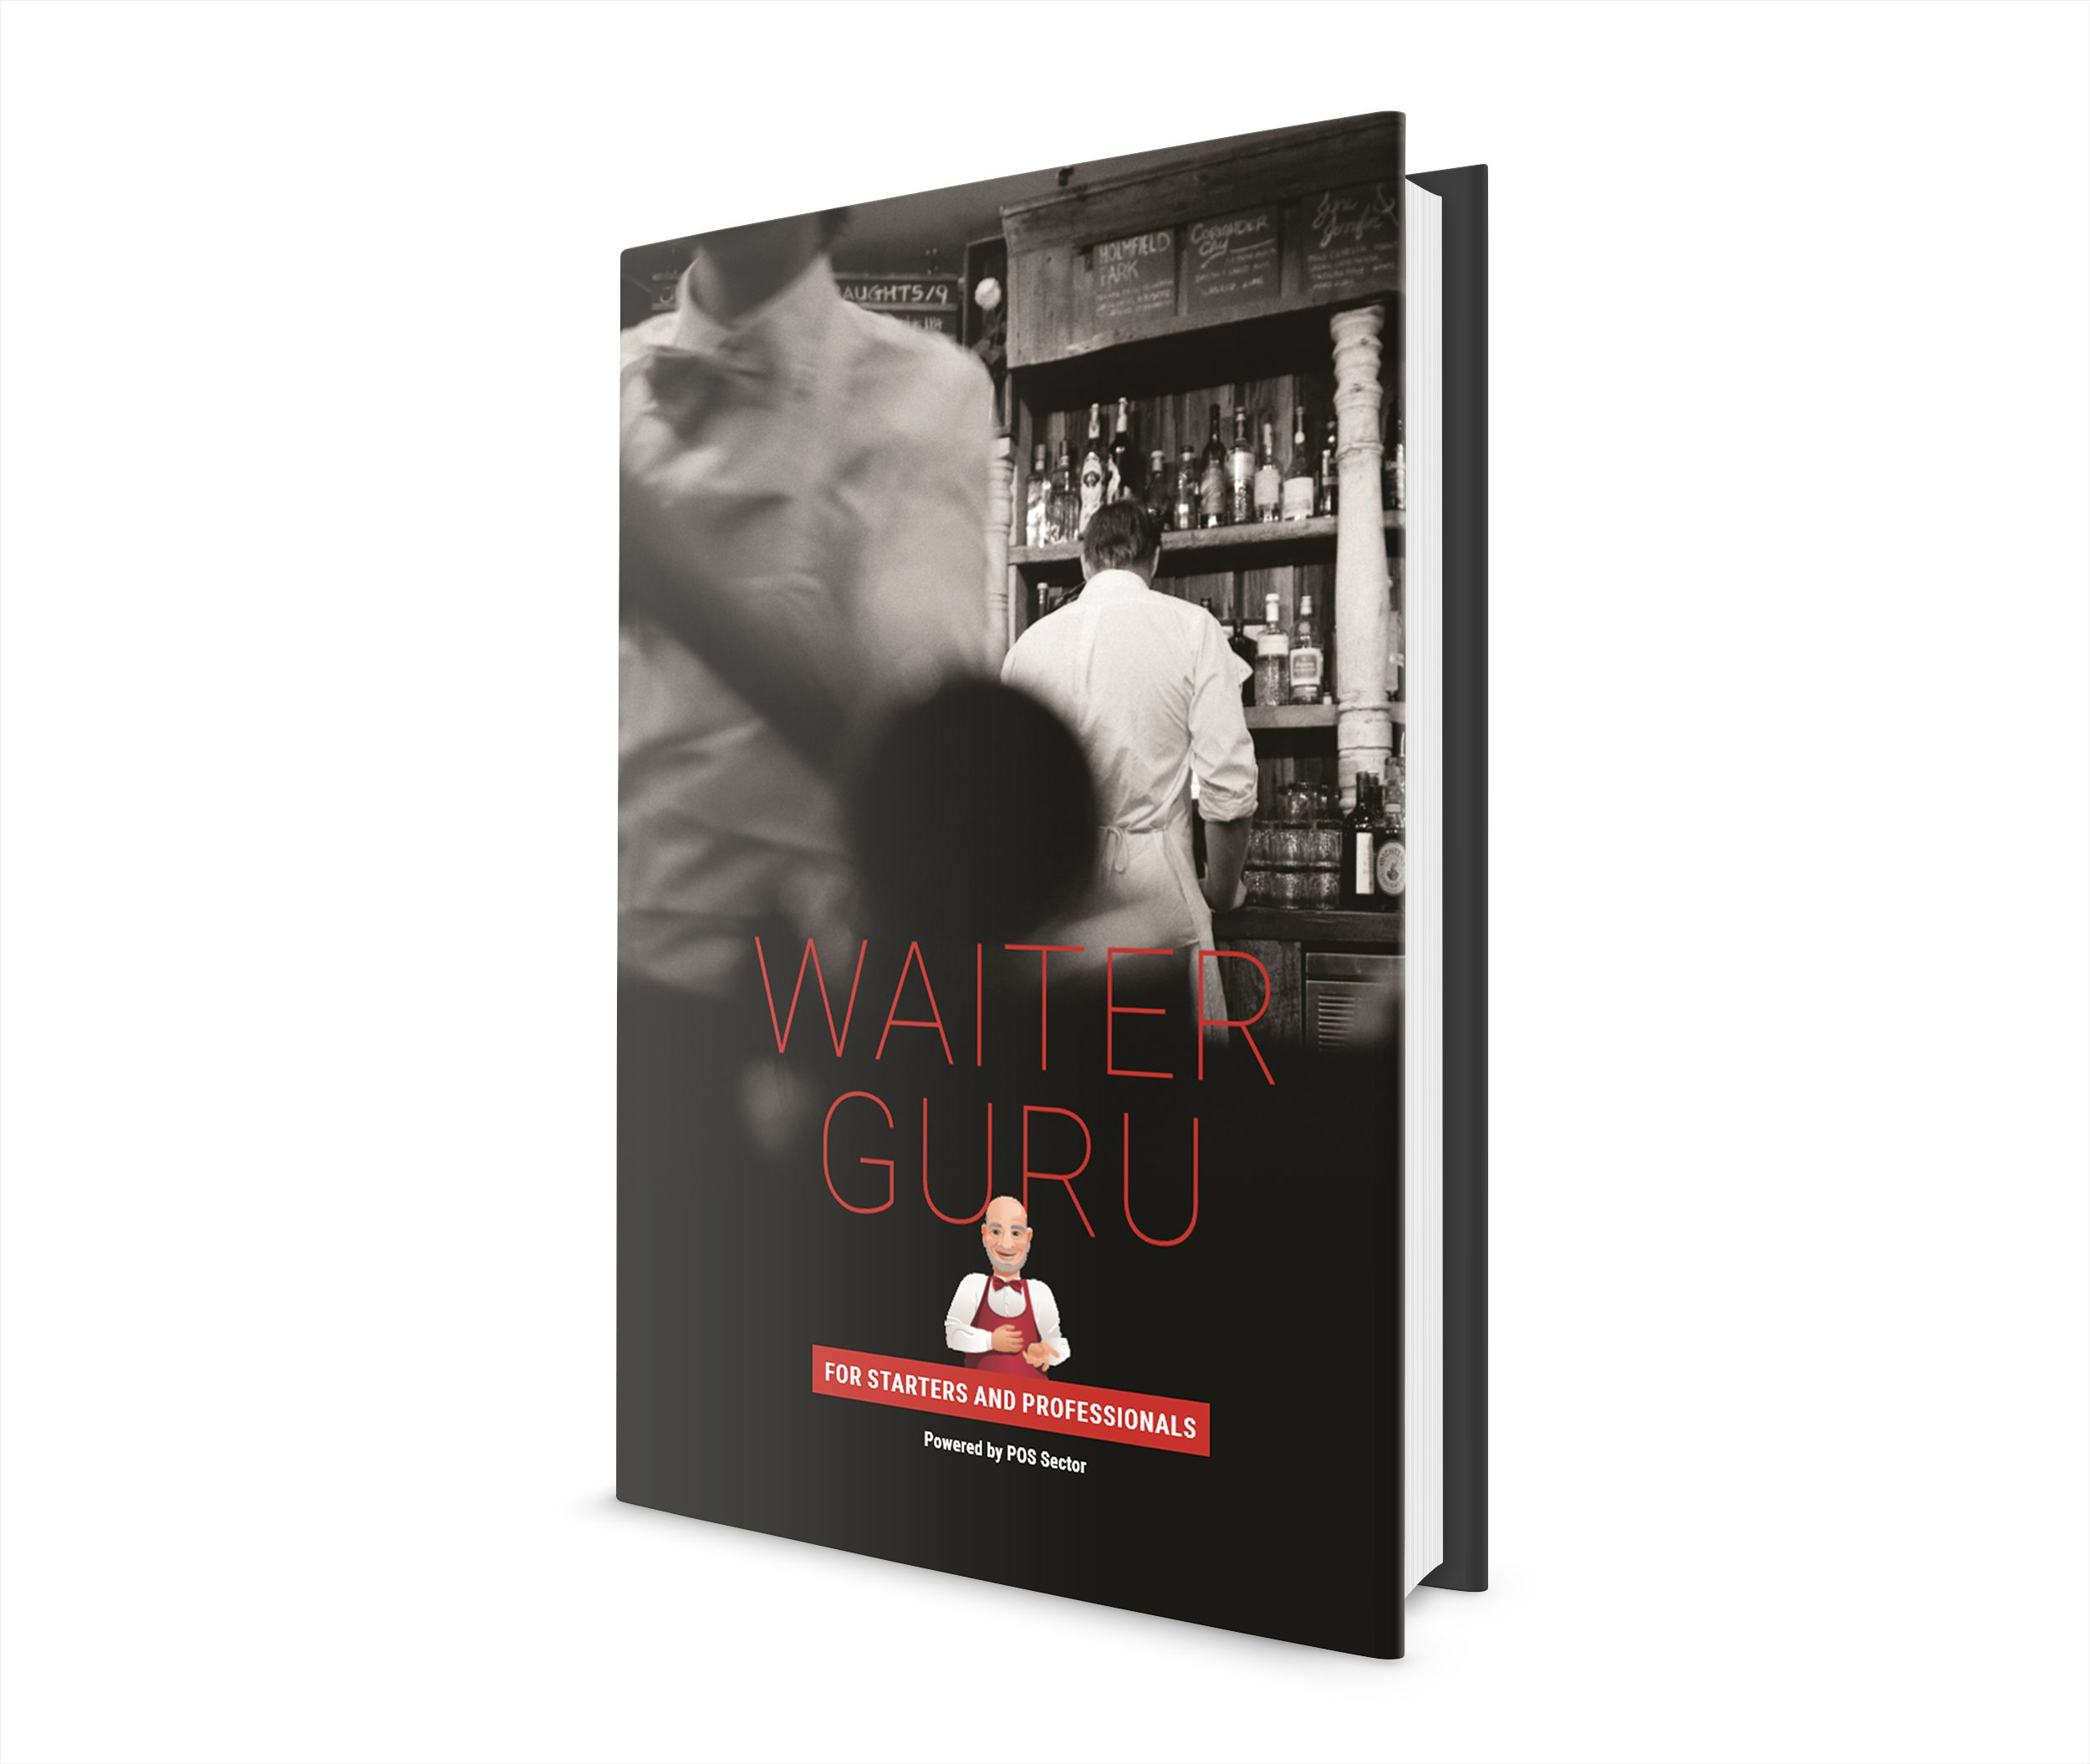 server s bible tips how to be a good restaurant waiter pos waiter guru describes the real experiences and how to deal daily problems in 21 chapters and 56 pages it just makes many things so simple